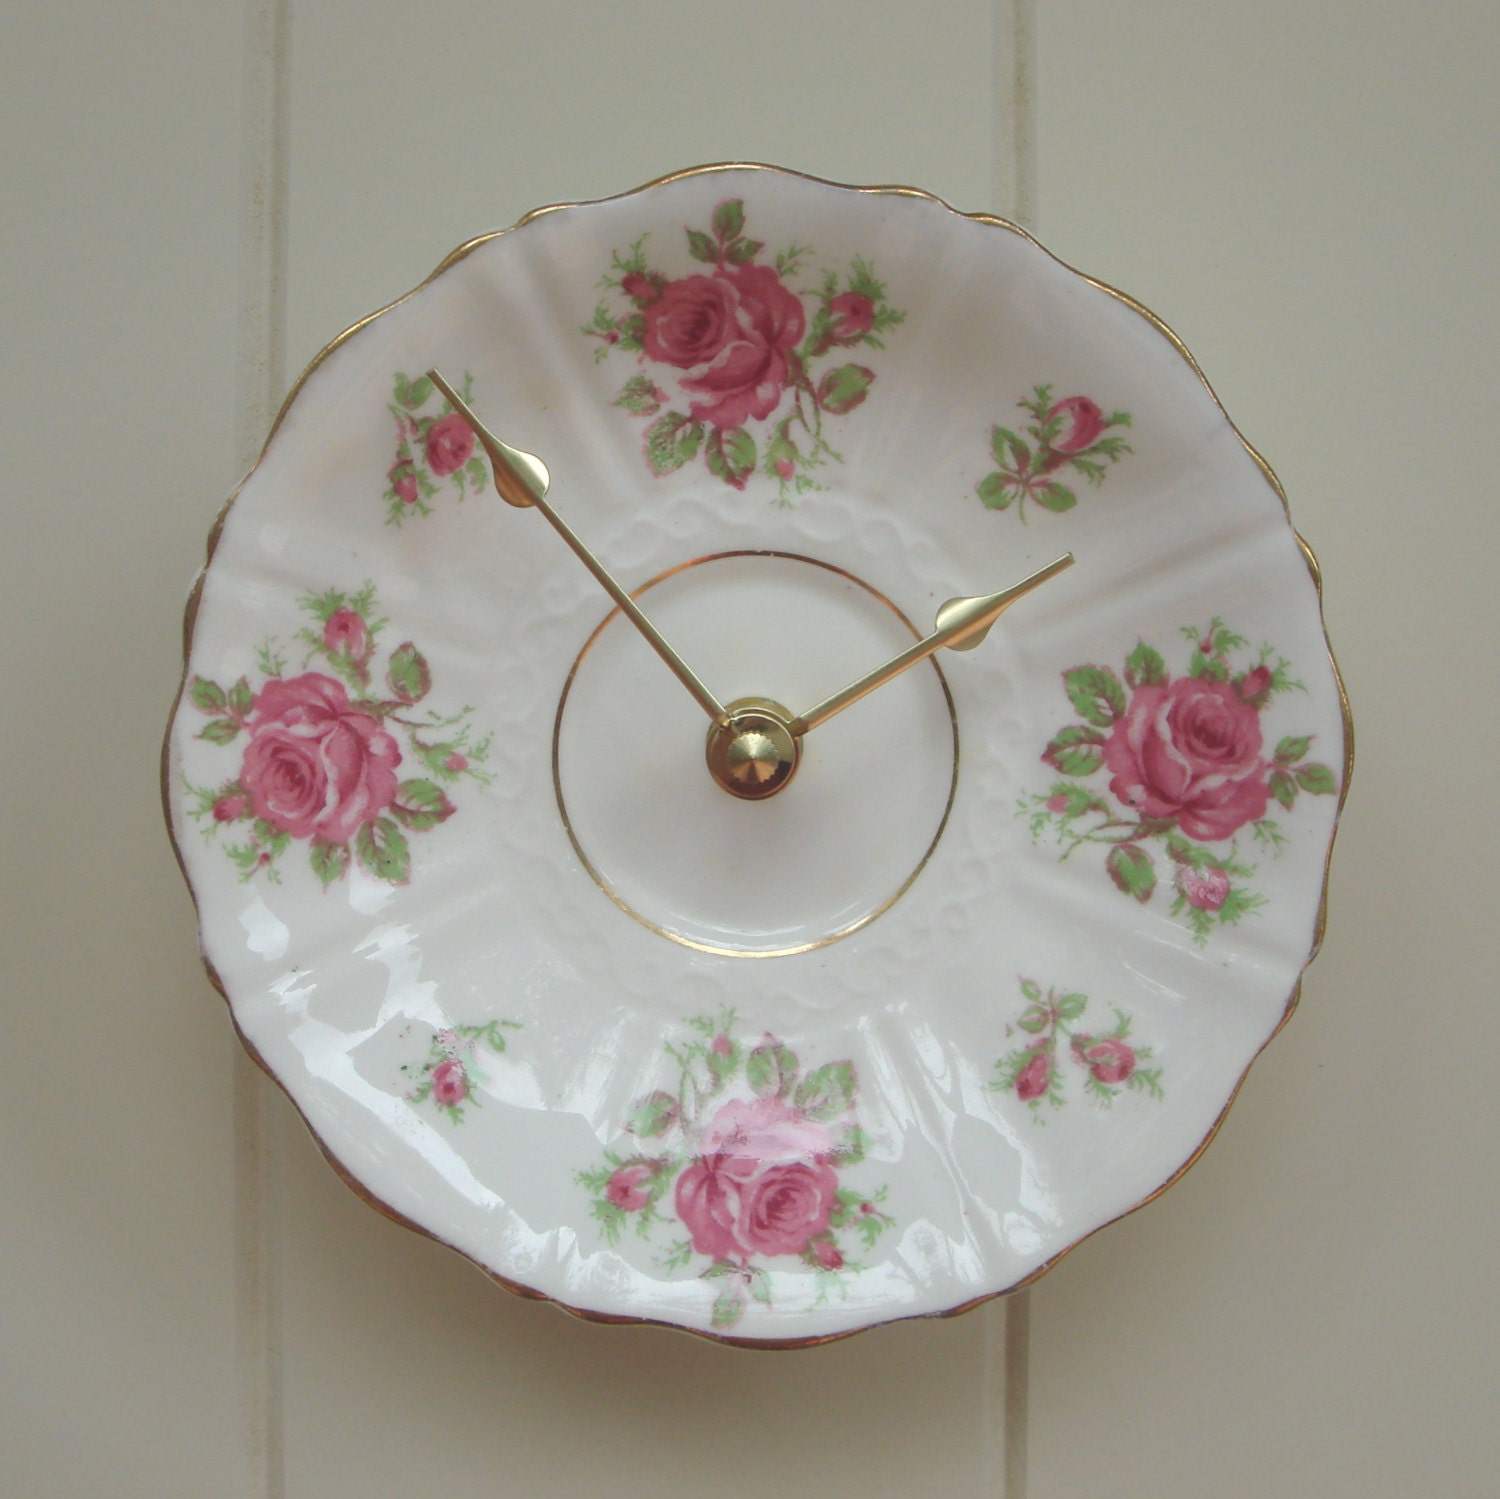 Vintage briar rose 1960's china clock, FREE DELIVERY to Australia and New Zealand, upcycled recycled repurposed in Western Australia